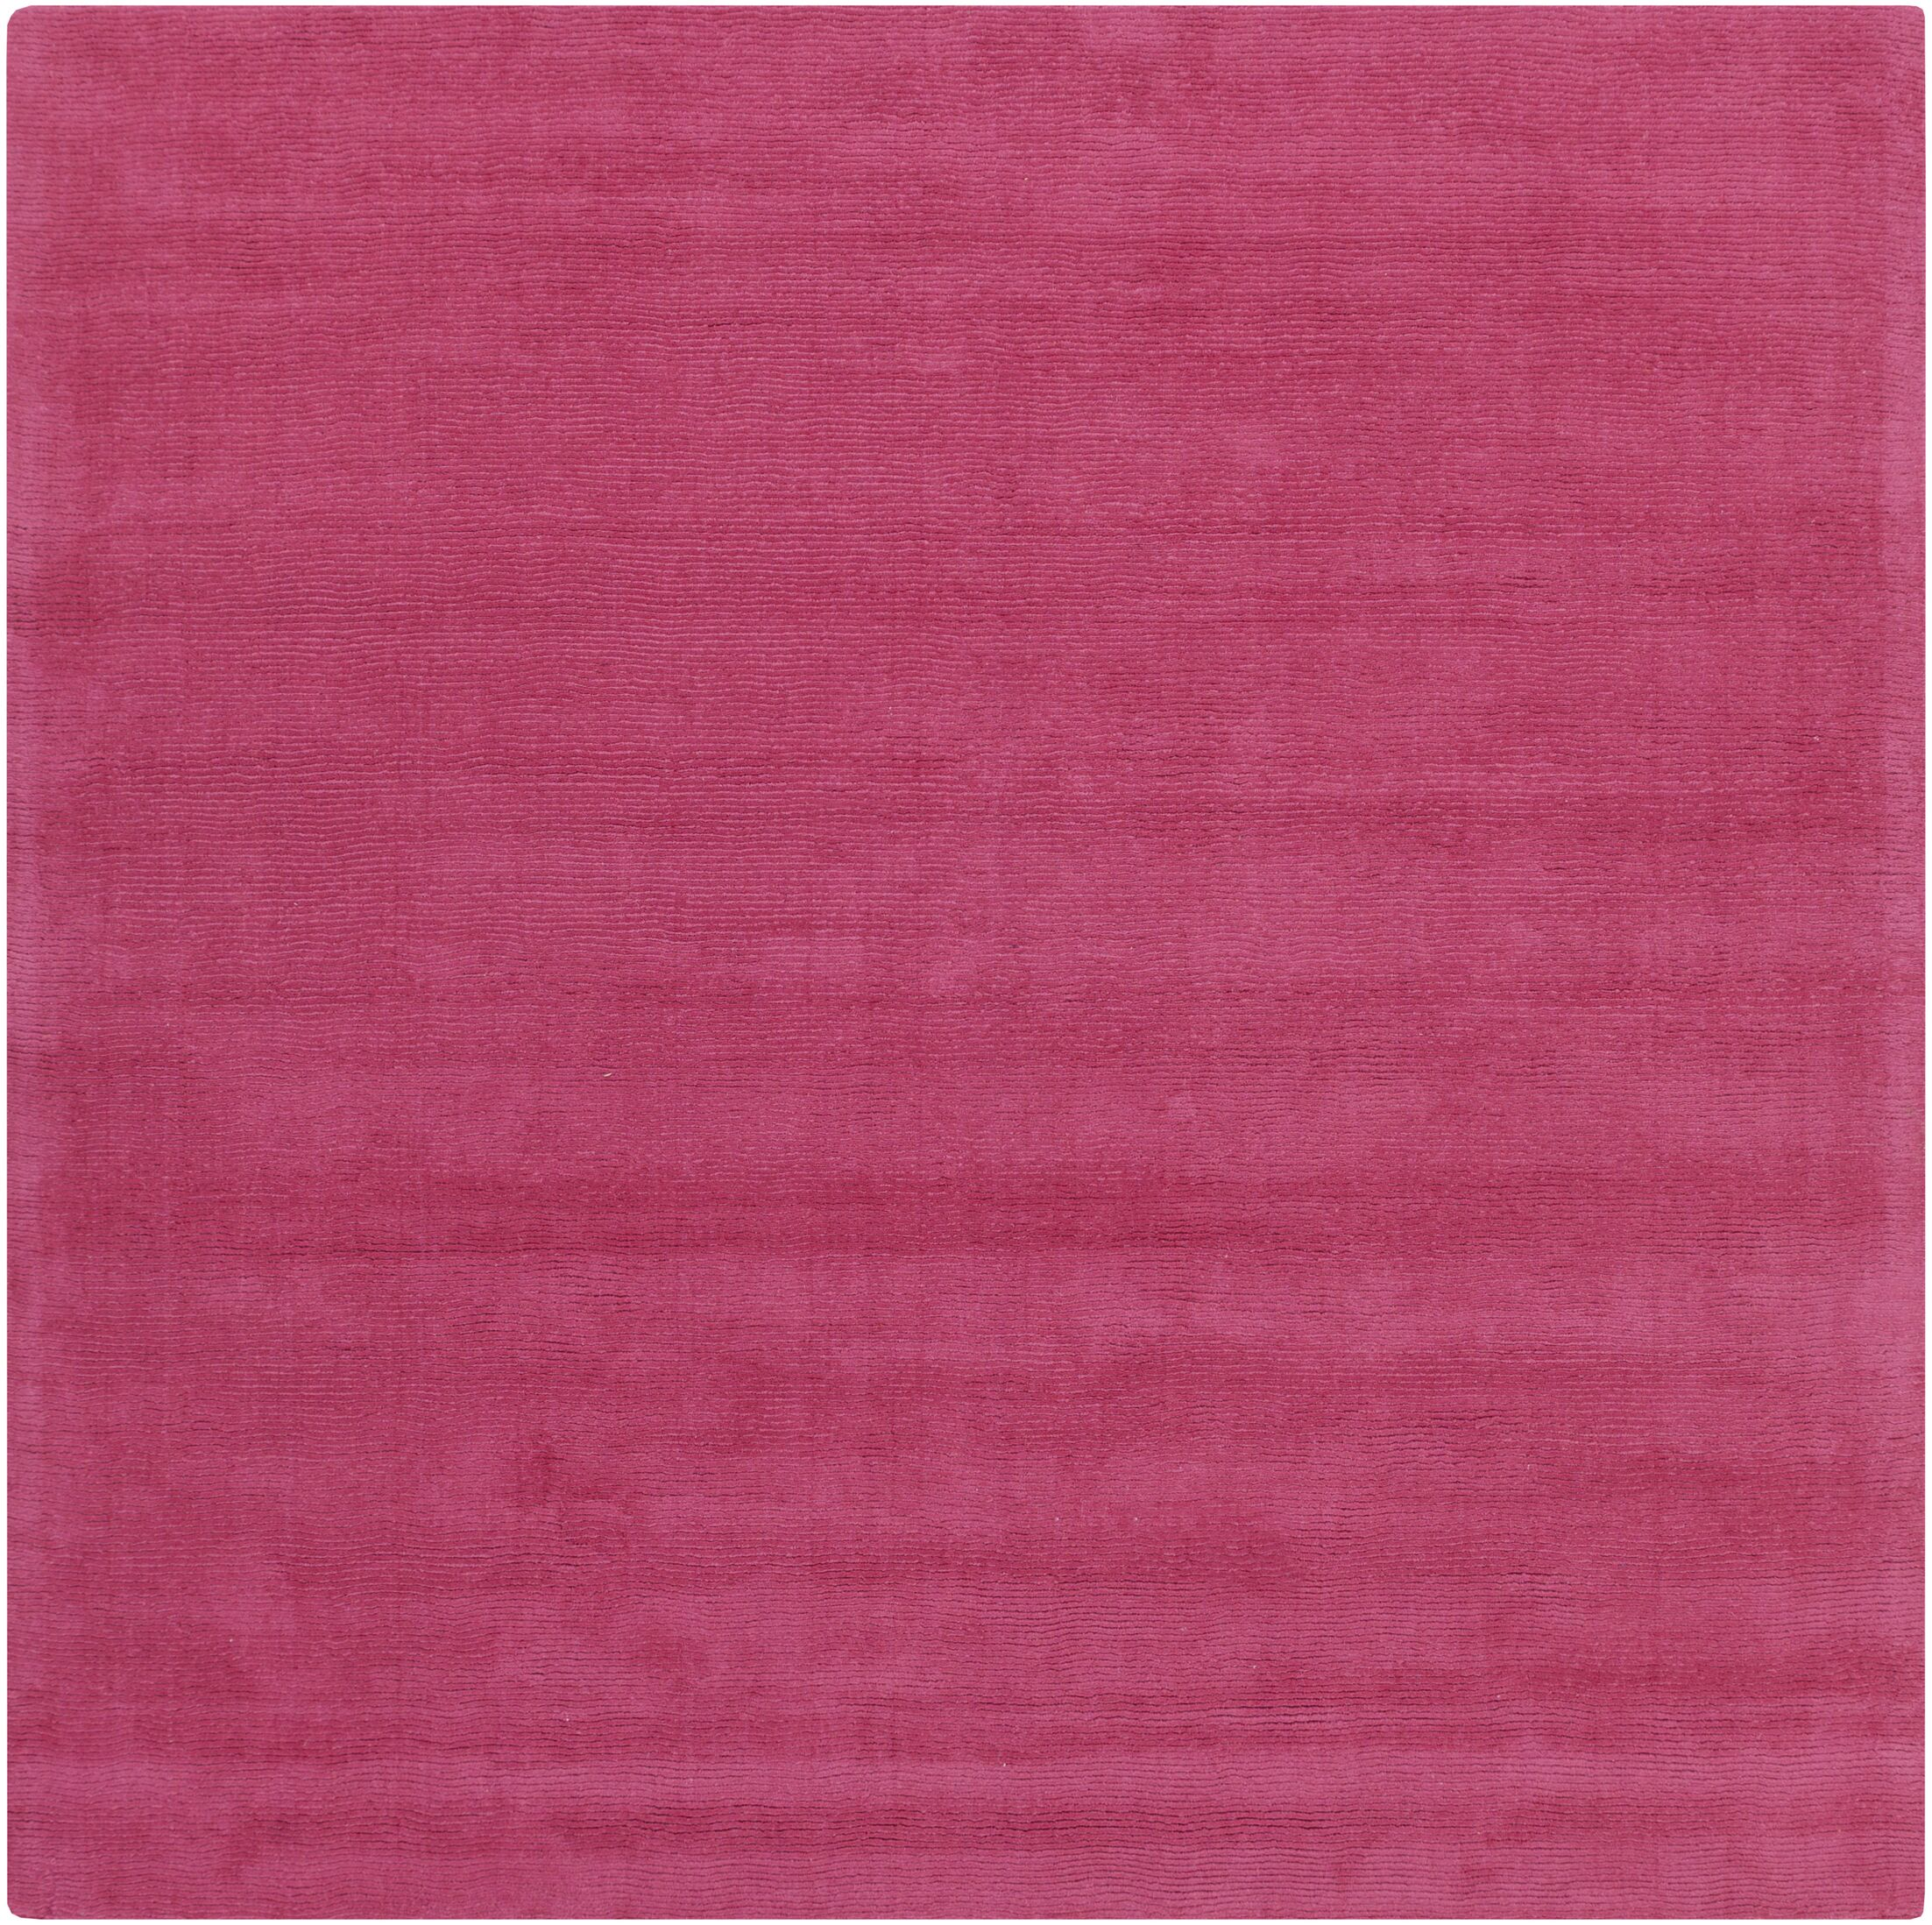 Naples Hand Woven Magenta Area Rug Rug Size: Square 9'9